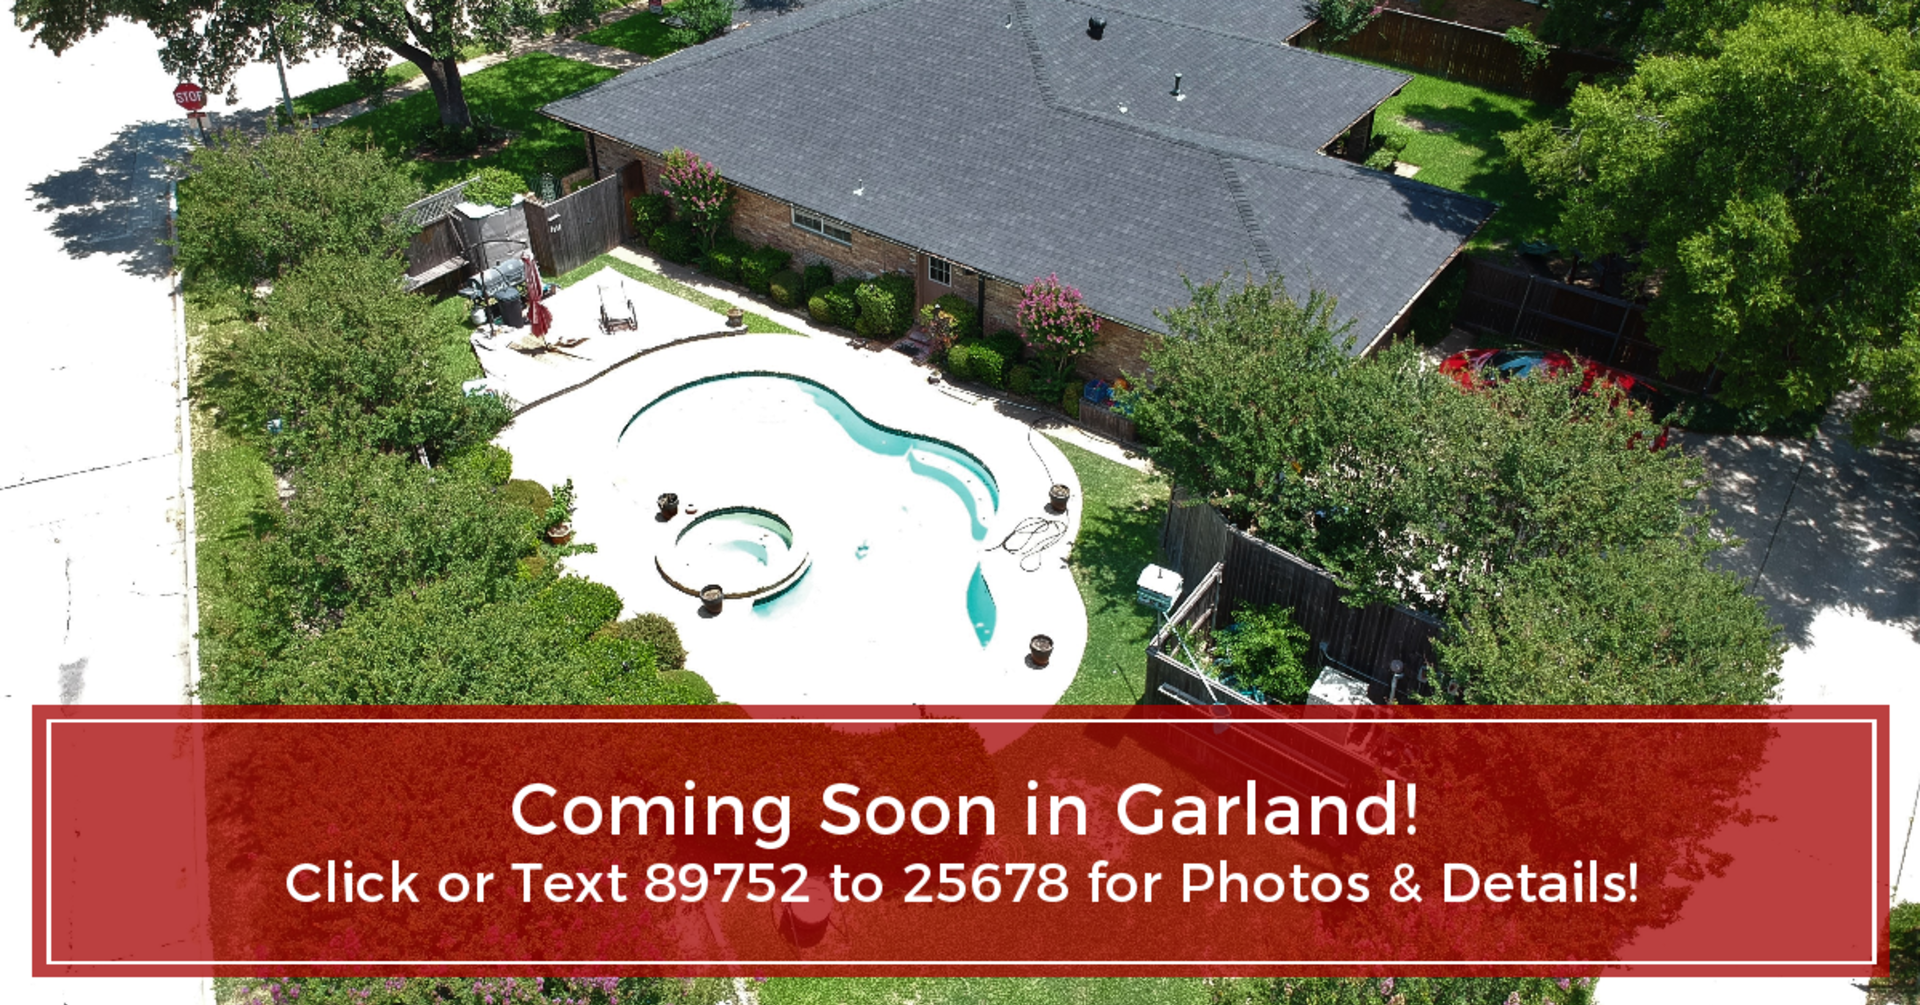 Coming Soon in Garland, 3-Bed, 2-Bath, 2 Backyards, Pool & Spa!